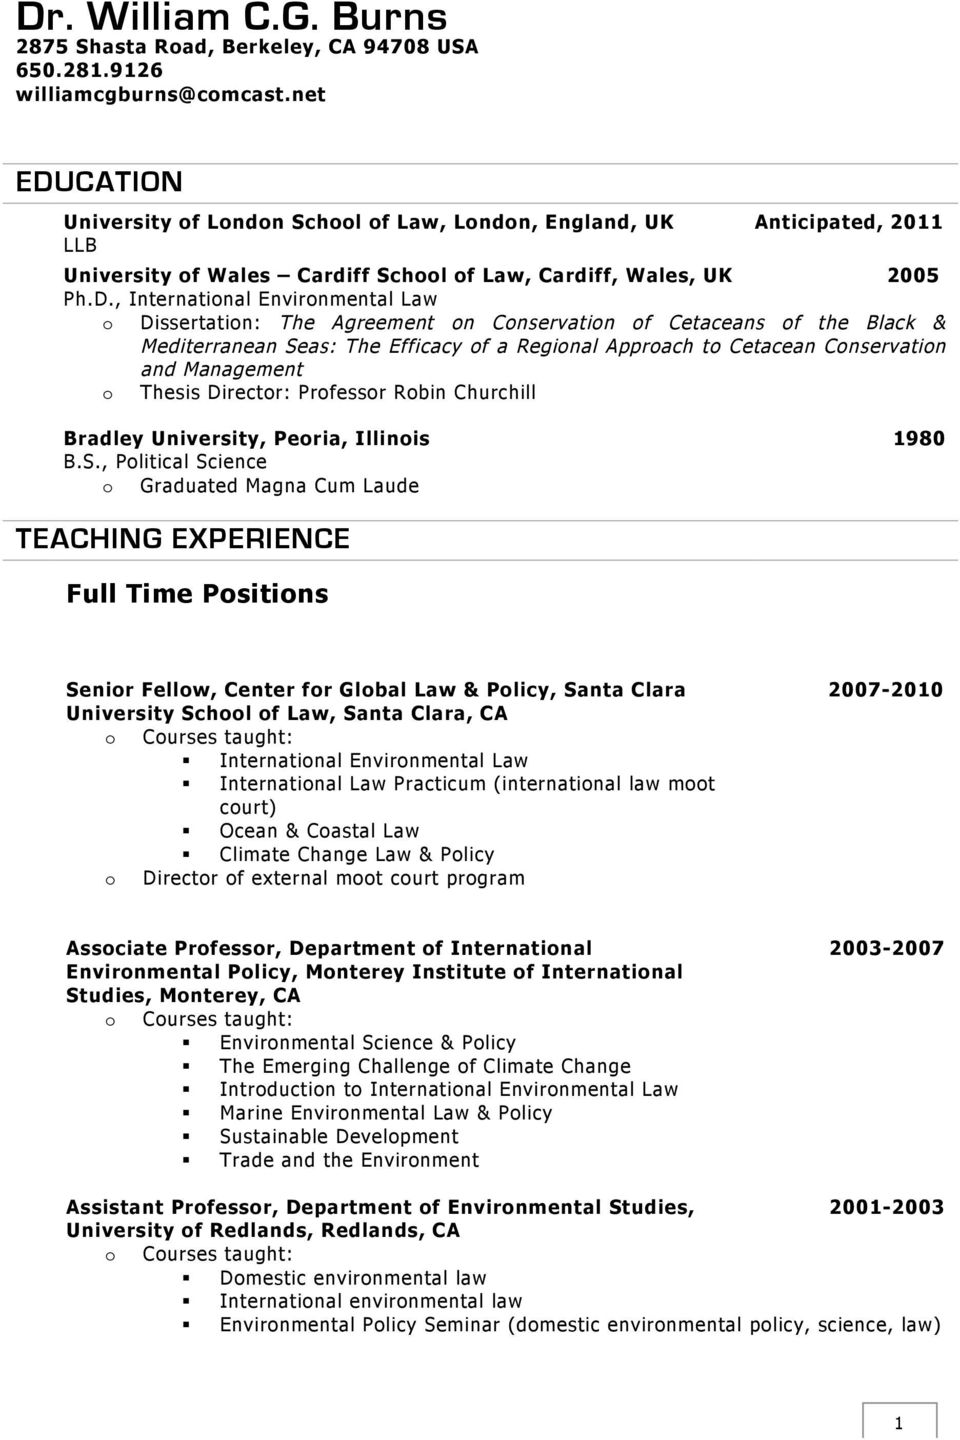 CATION University f Lndn Schl f Law, Lndn, England, UK Anticipated, 2011 LLB University f Wales Cardiff Schl f Law, Cardiff, Wales, UK 2005 Ph.D.